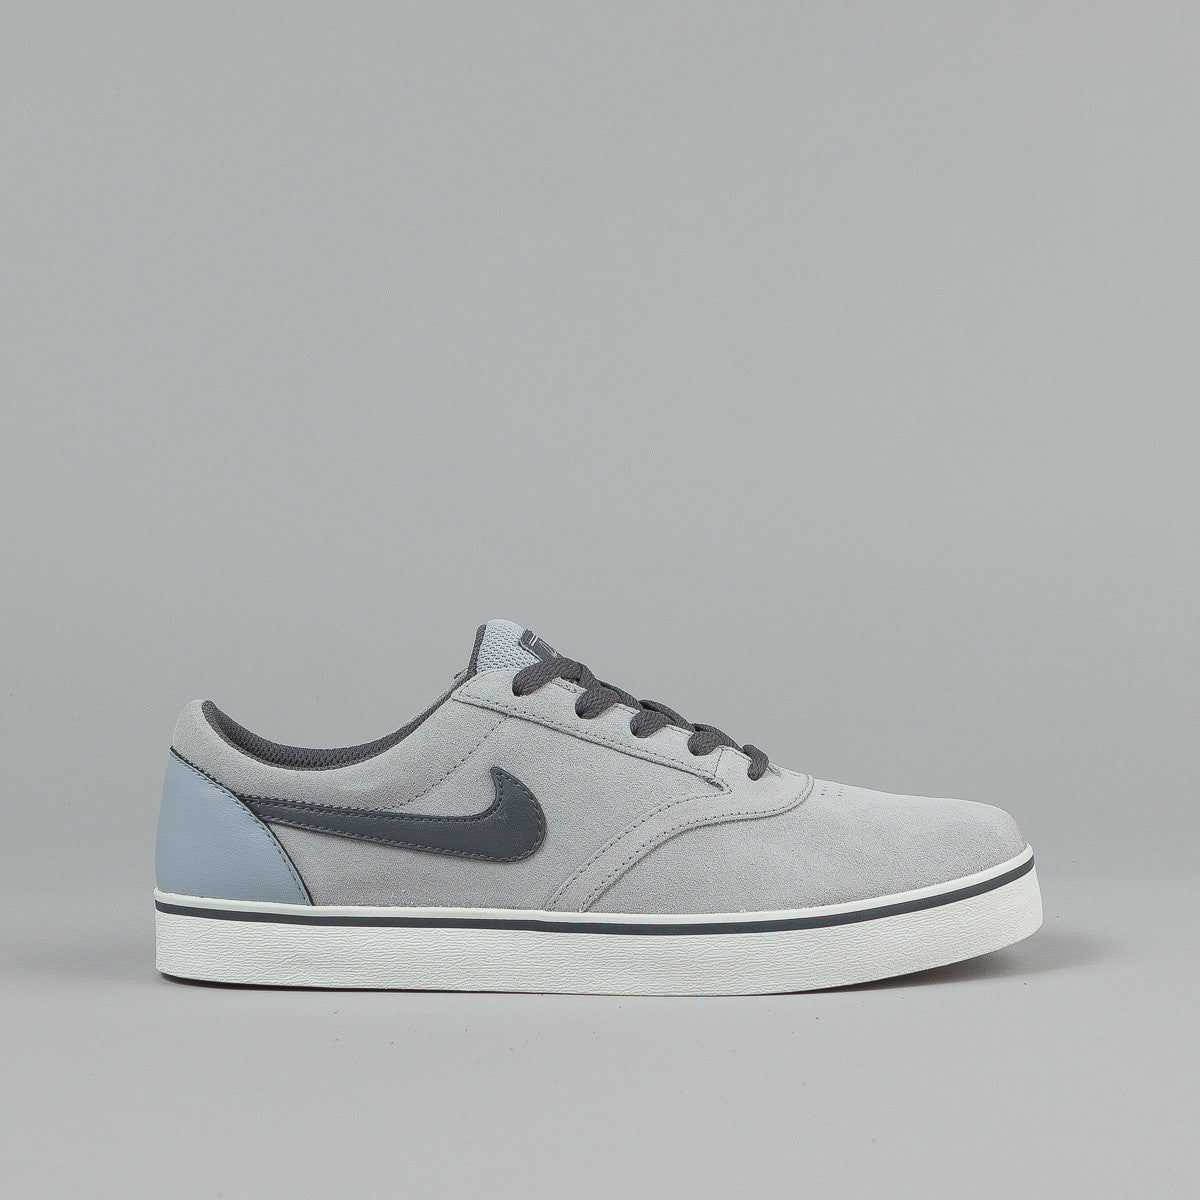 Nike SB Vulc Rod Shoes